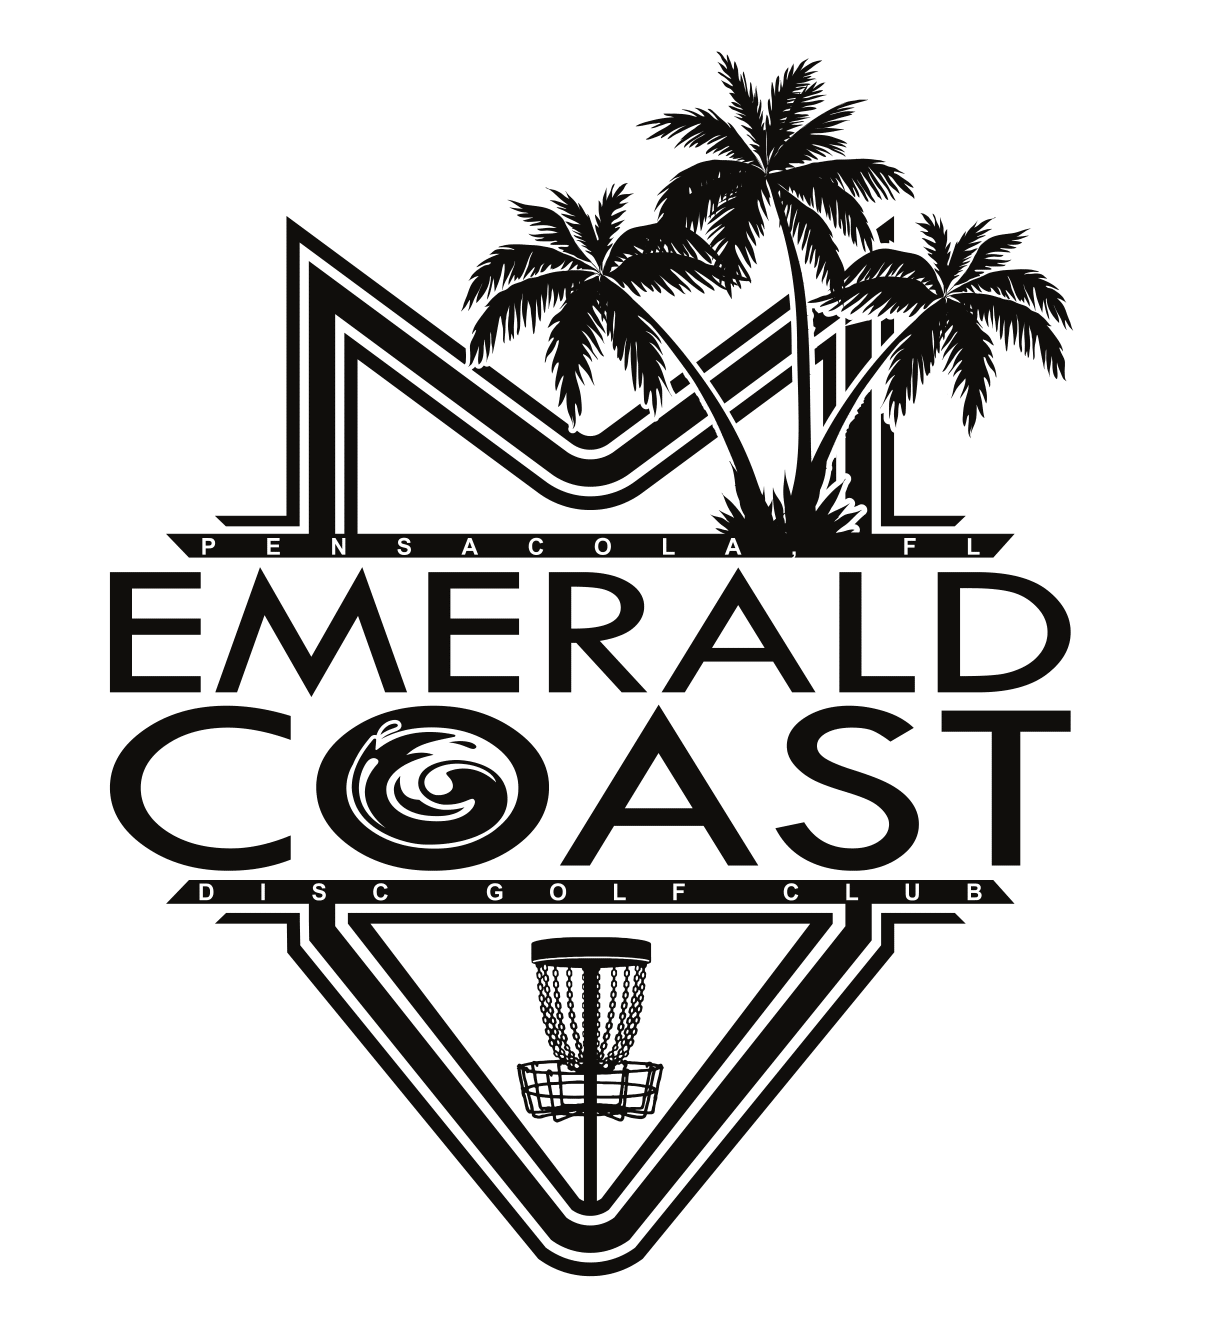 Ecdgc emerald coast disc golf clubnsacolas home for disc golf copyright 2018 emerald coast disc golf club all rights reserved email infoecdgc biocorpaavc